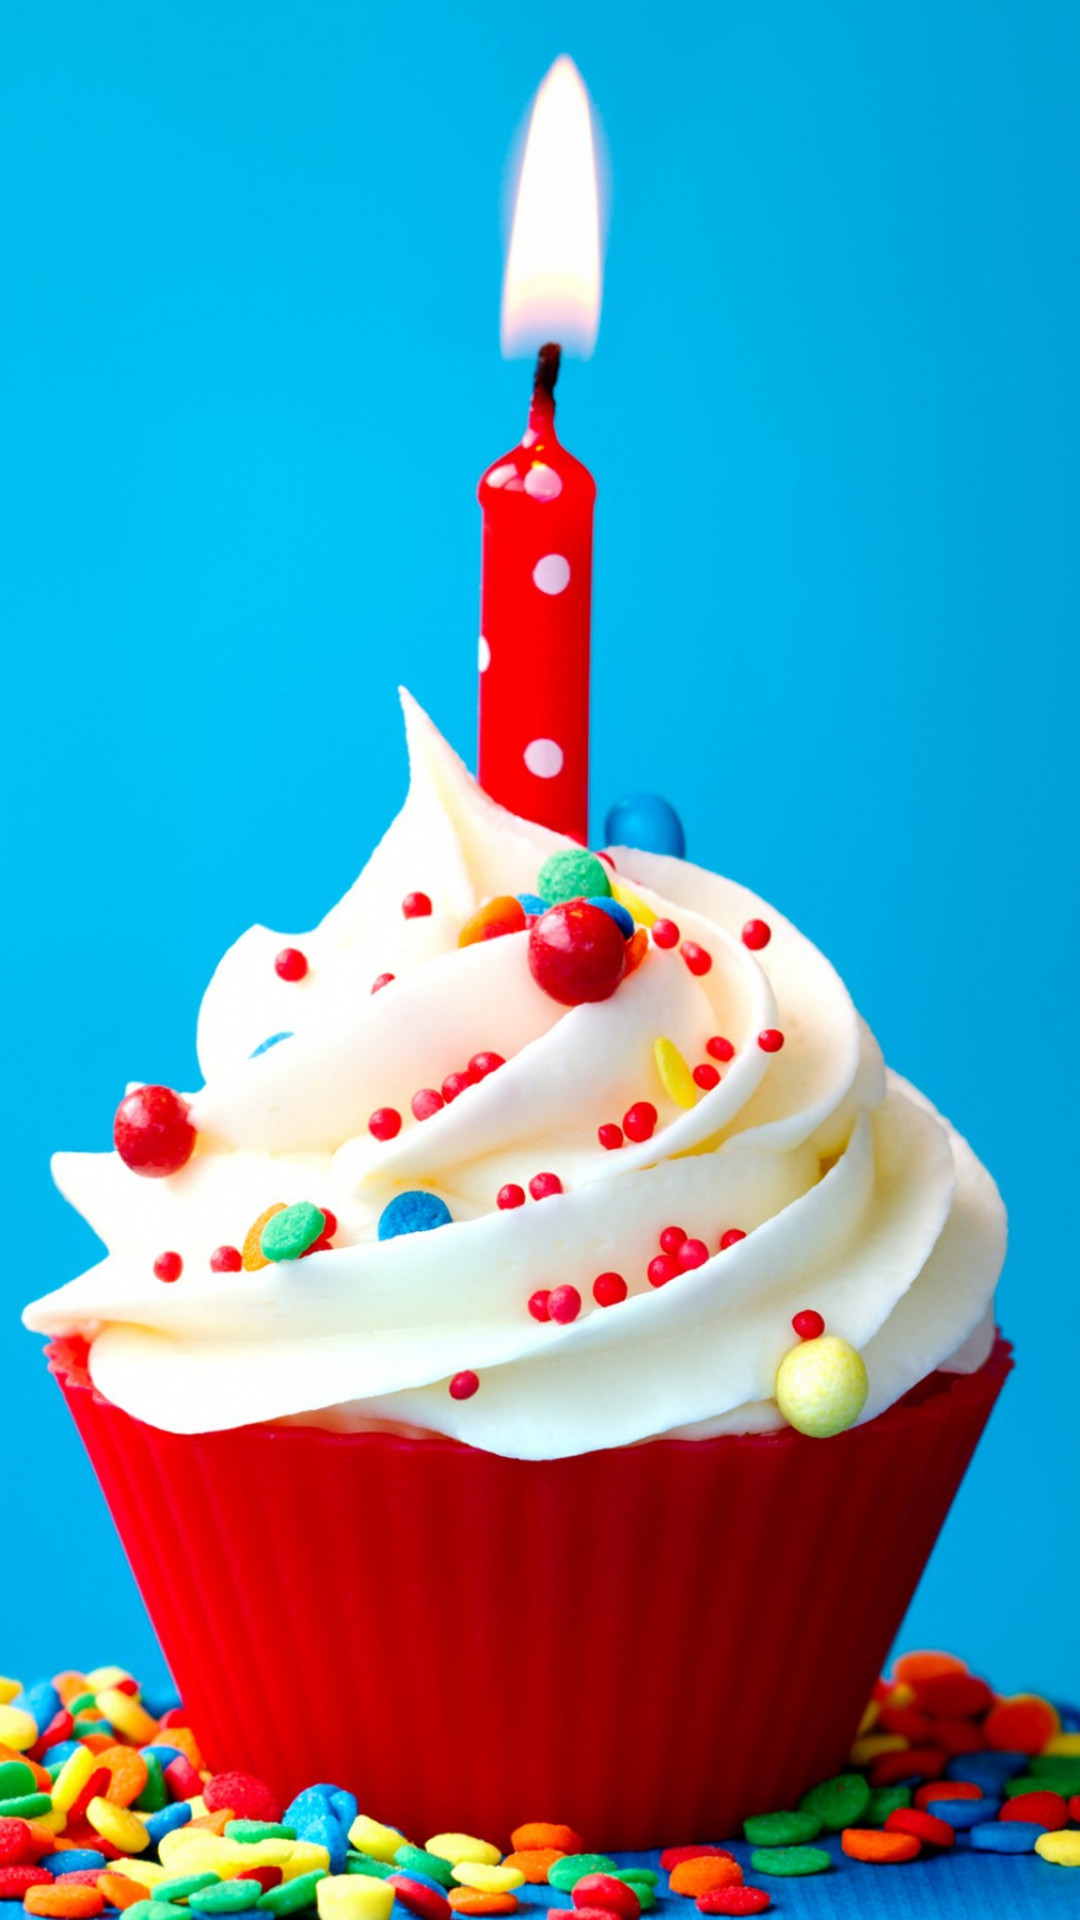 Best ideas about Birthday Cake Wallpaper . Save or Pin Birthday cake Best htc one wallpapers free and easy to Now.